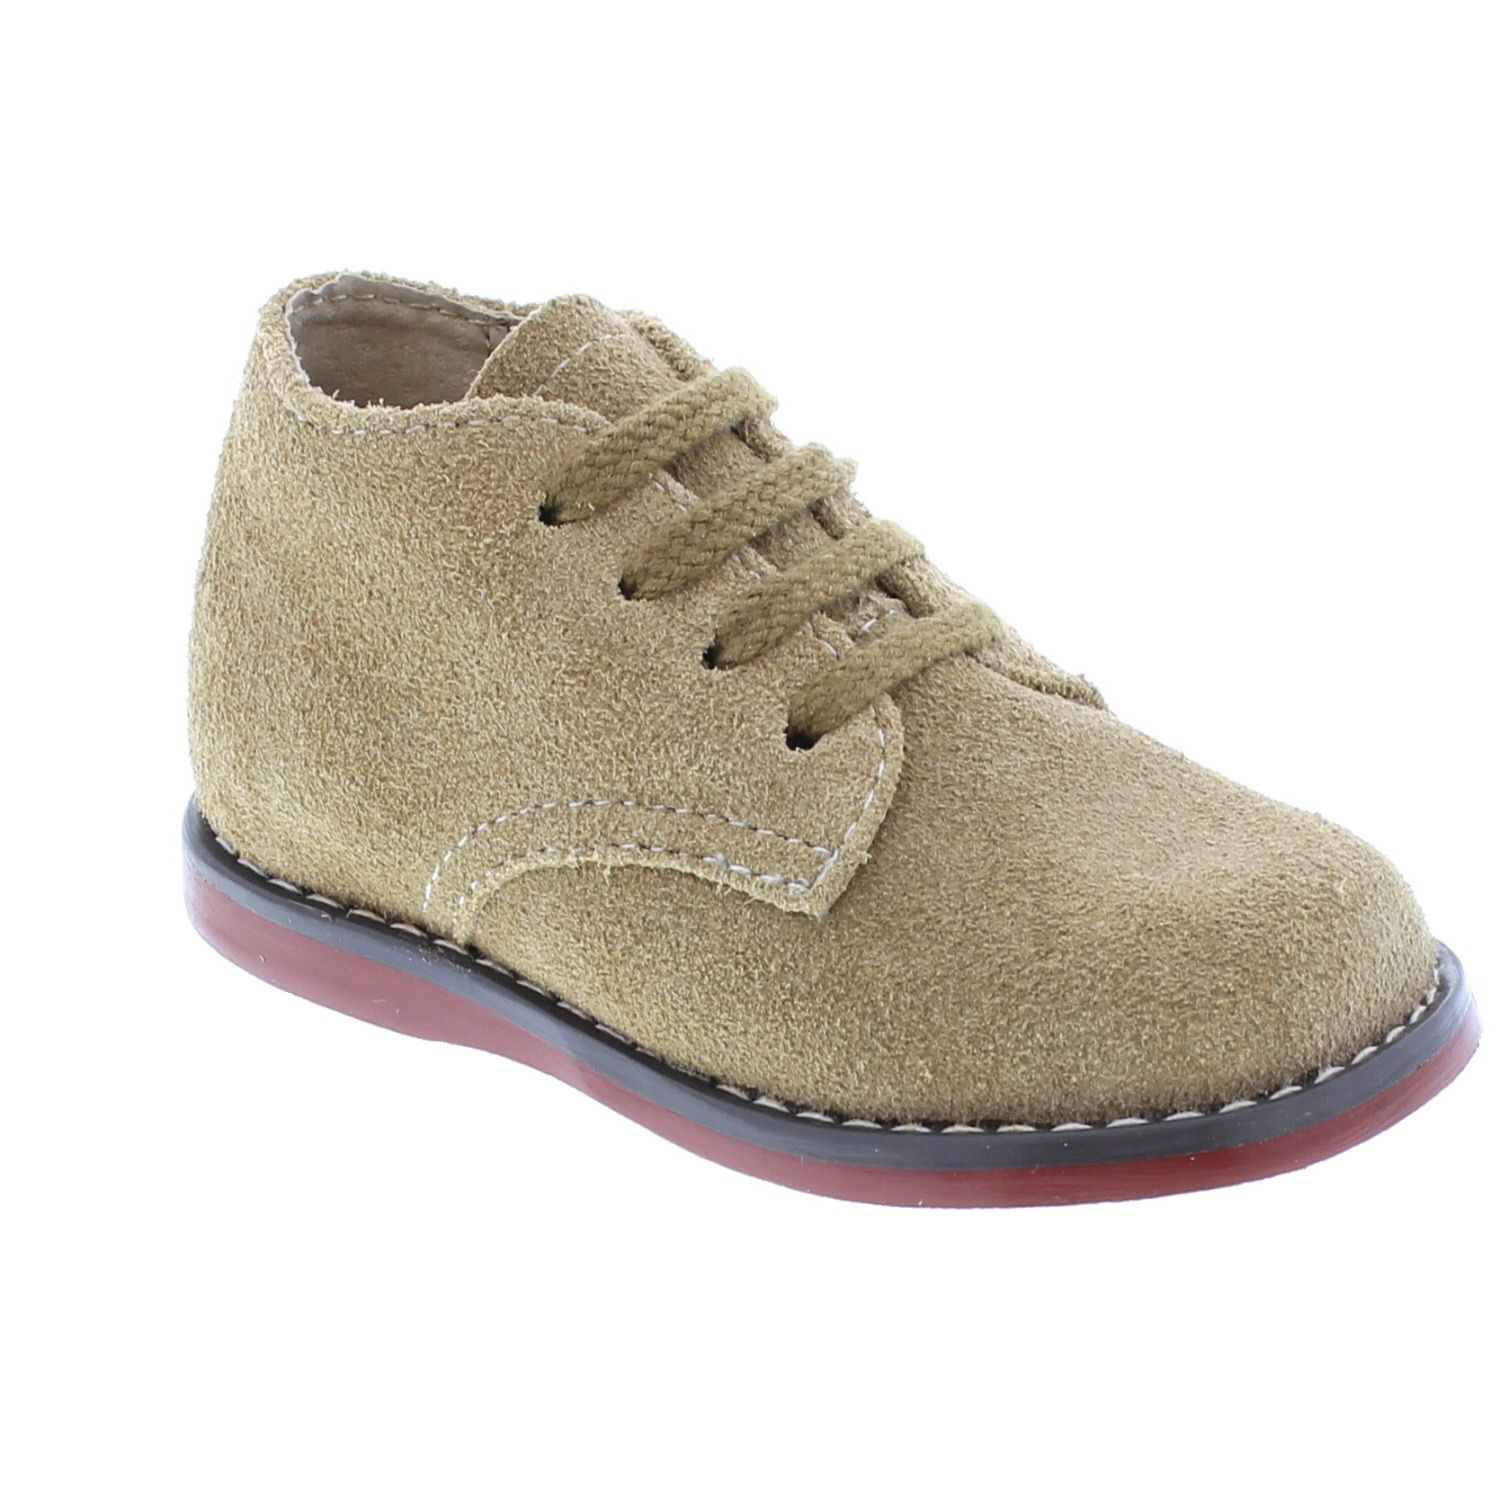 Kids dress shoes, Toddler shoes, Kids shoes